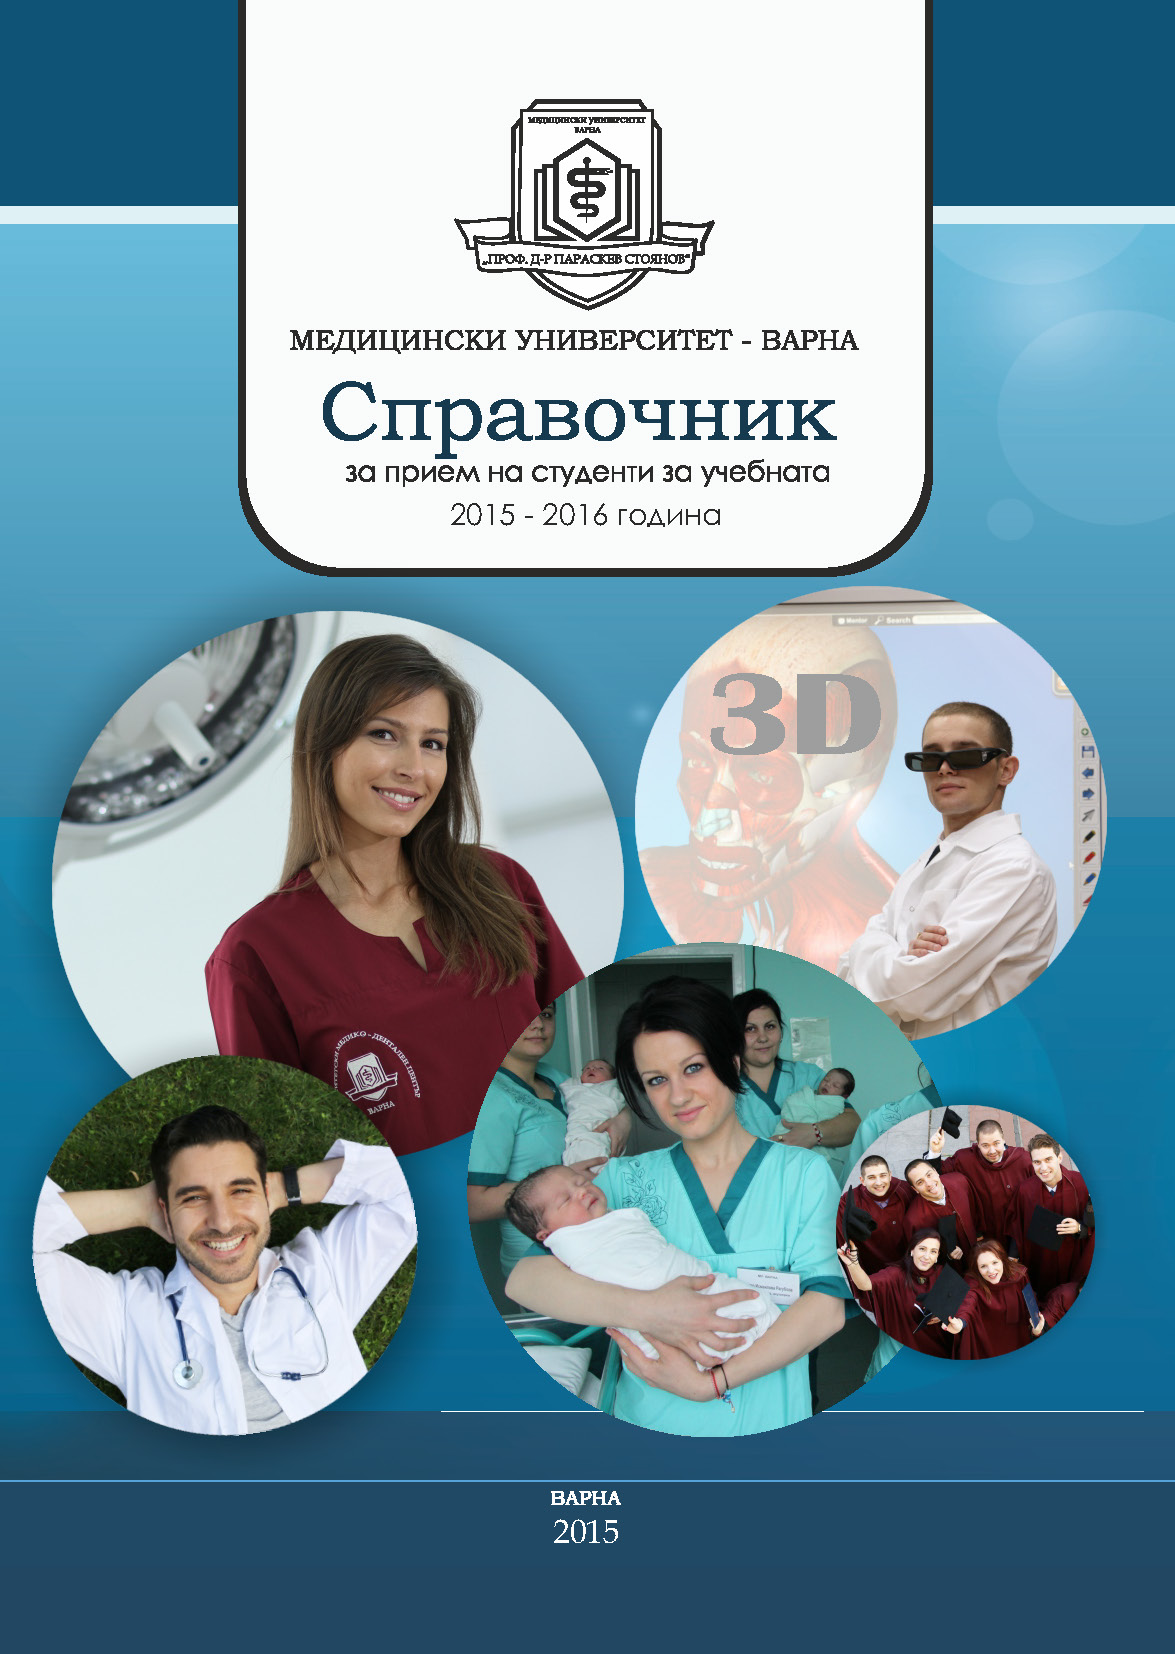 Students Medical University Admission Handbook 2015-2016 Is Now Available in the Bookshop of MU-Varna